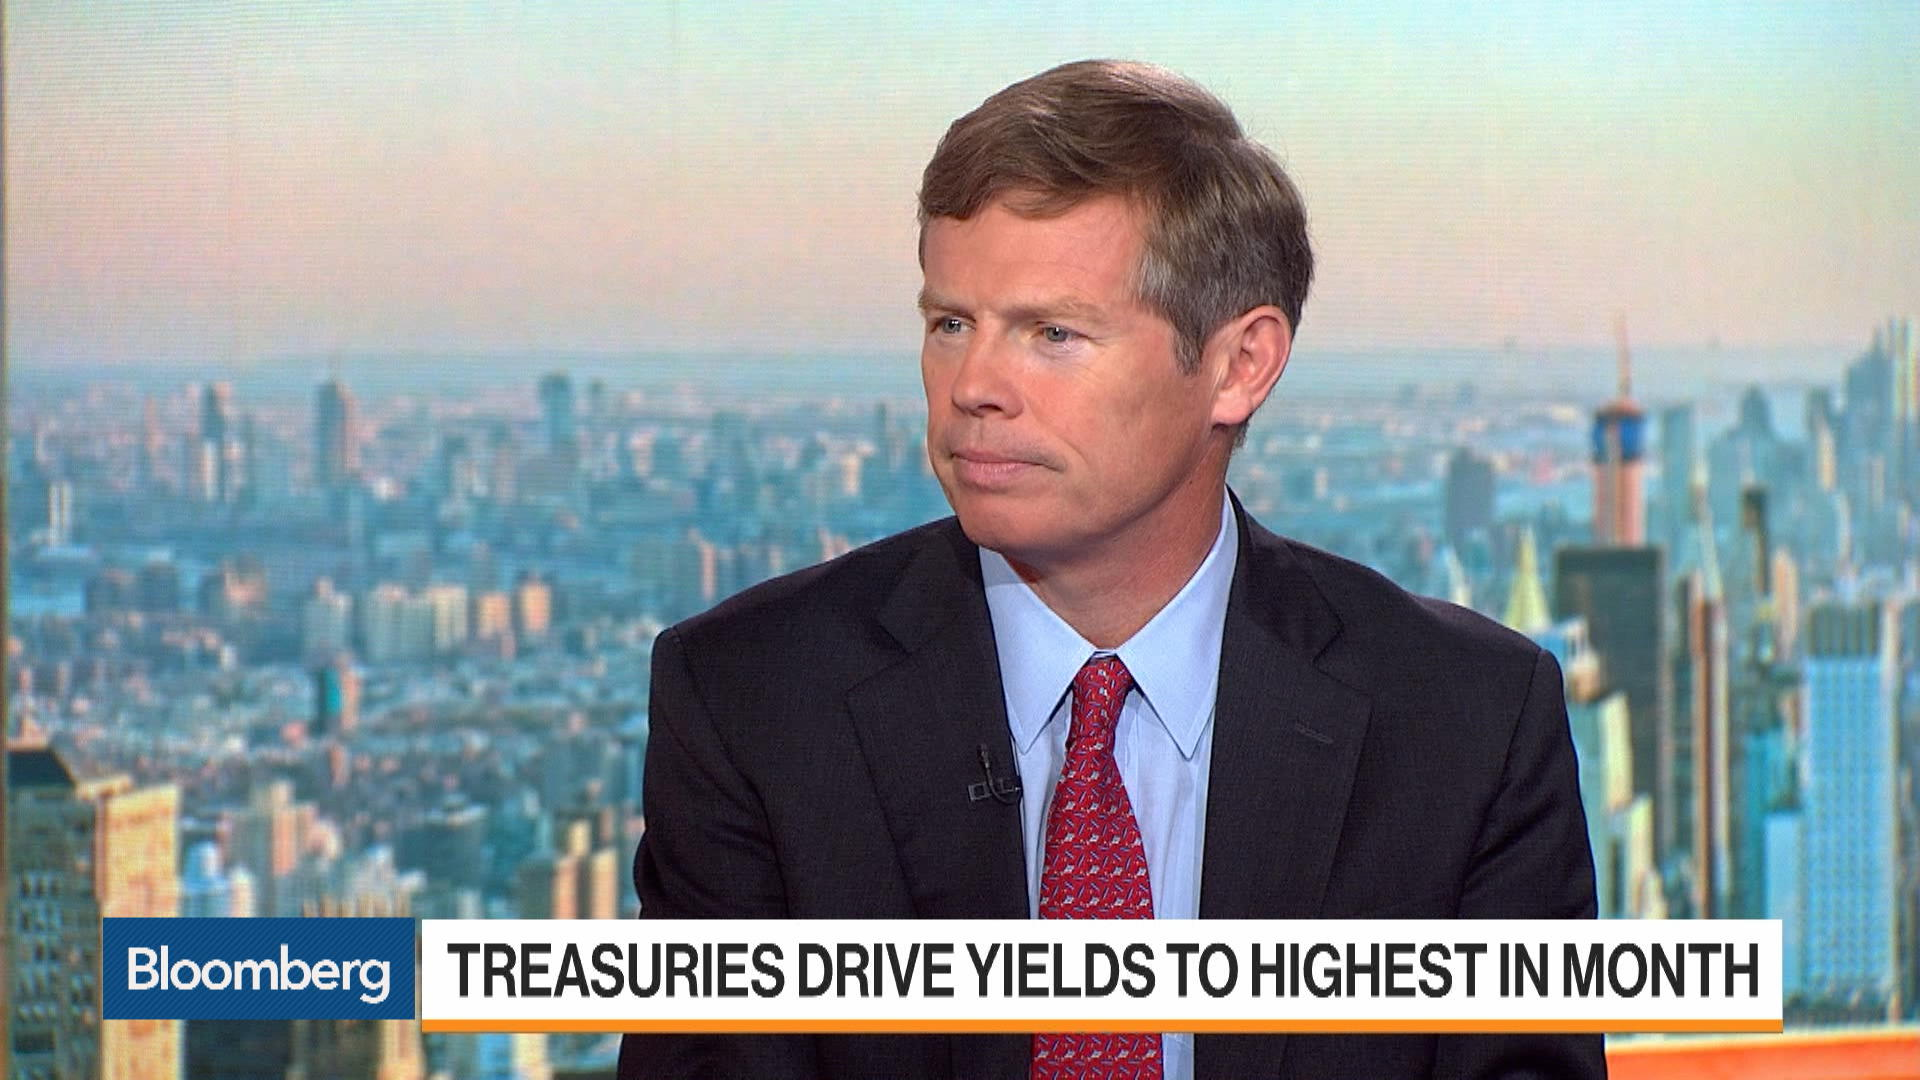 Bond Market Returns to Be Low for a Long Time, JPM's Kelly Says